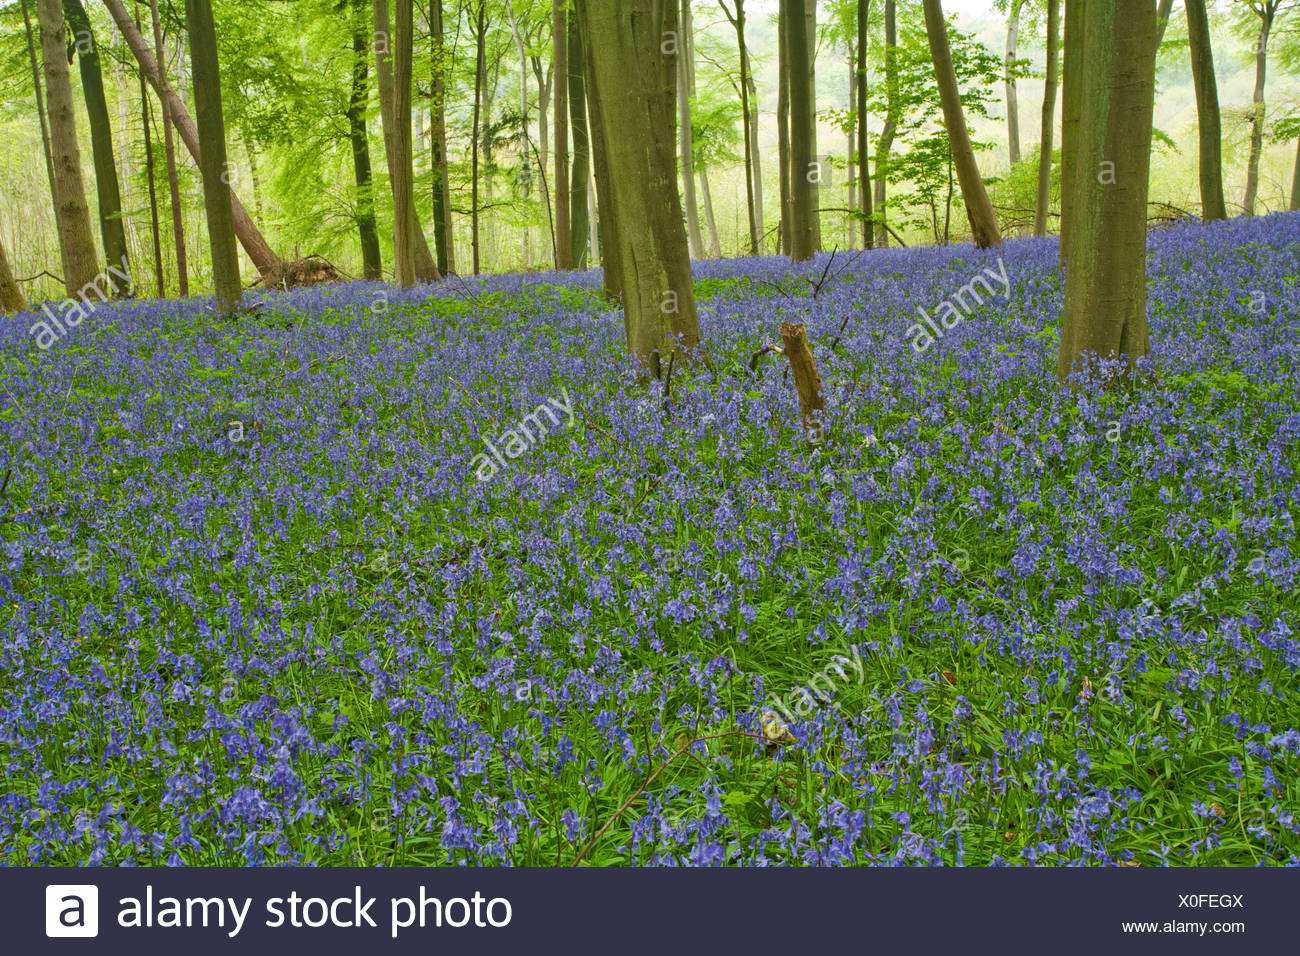 Spring bluebells in the beech woodland on the Chiltern Hills above Mapledurham, Oxfordshire, Uk - Stock Image